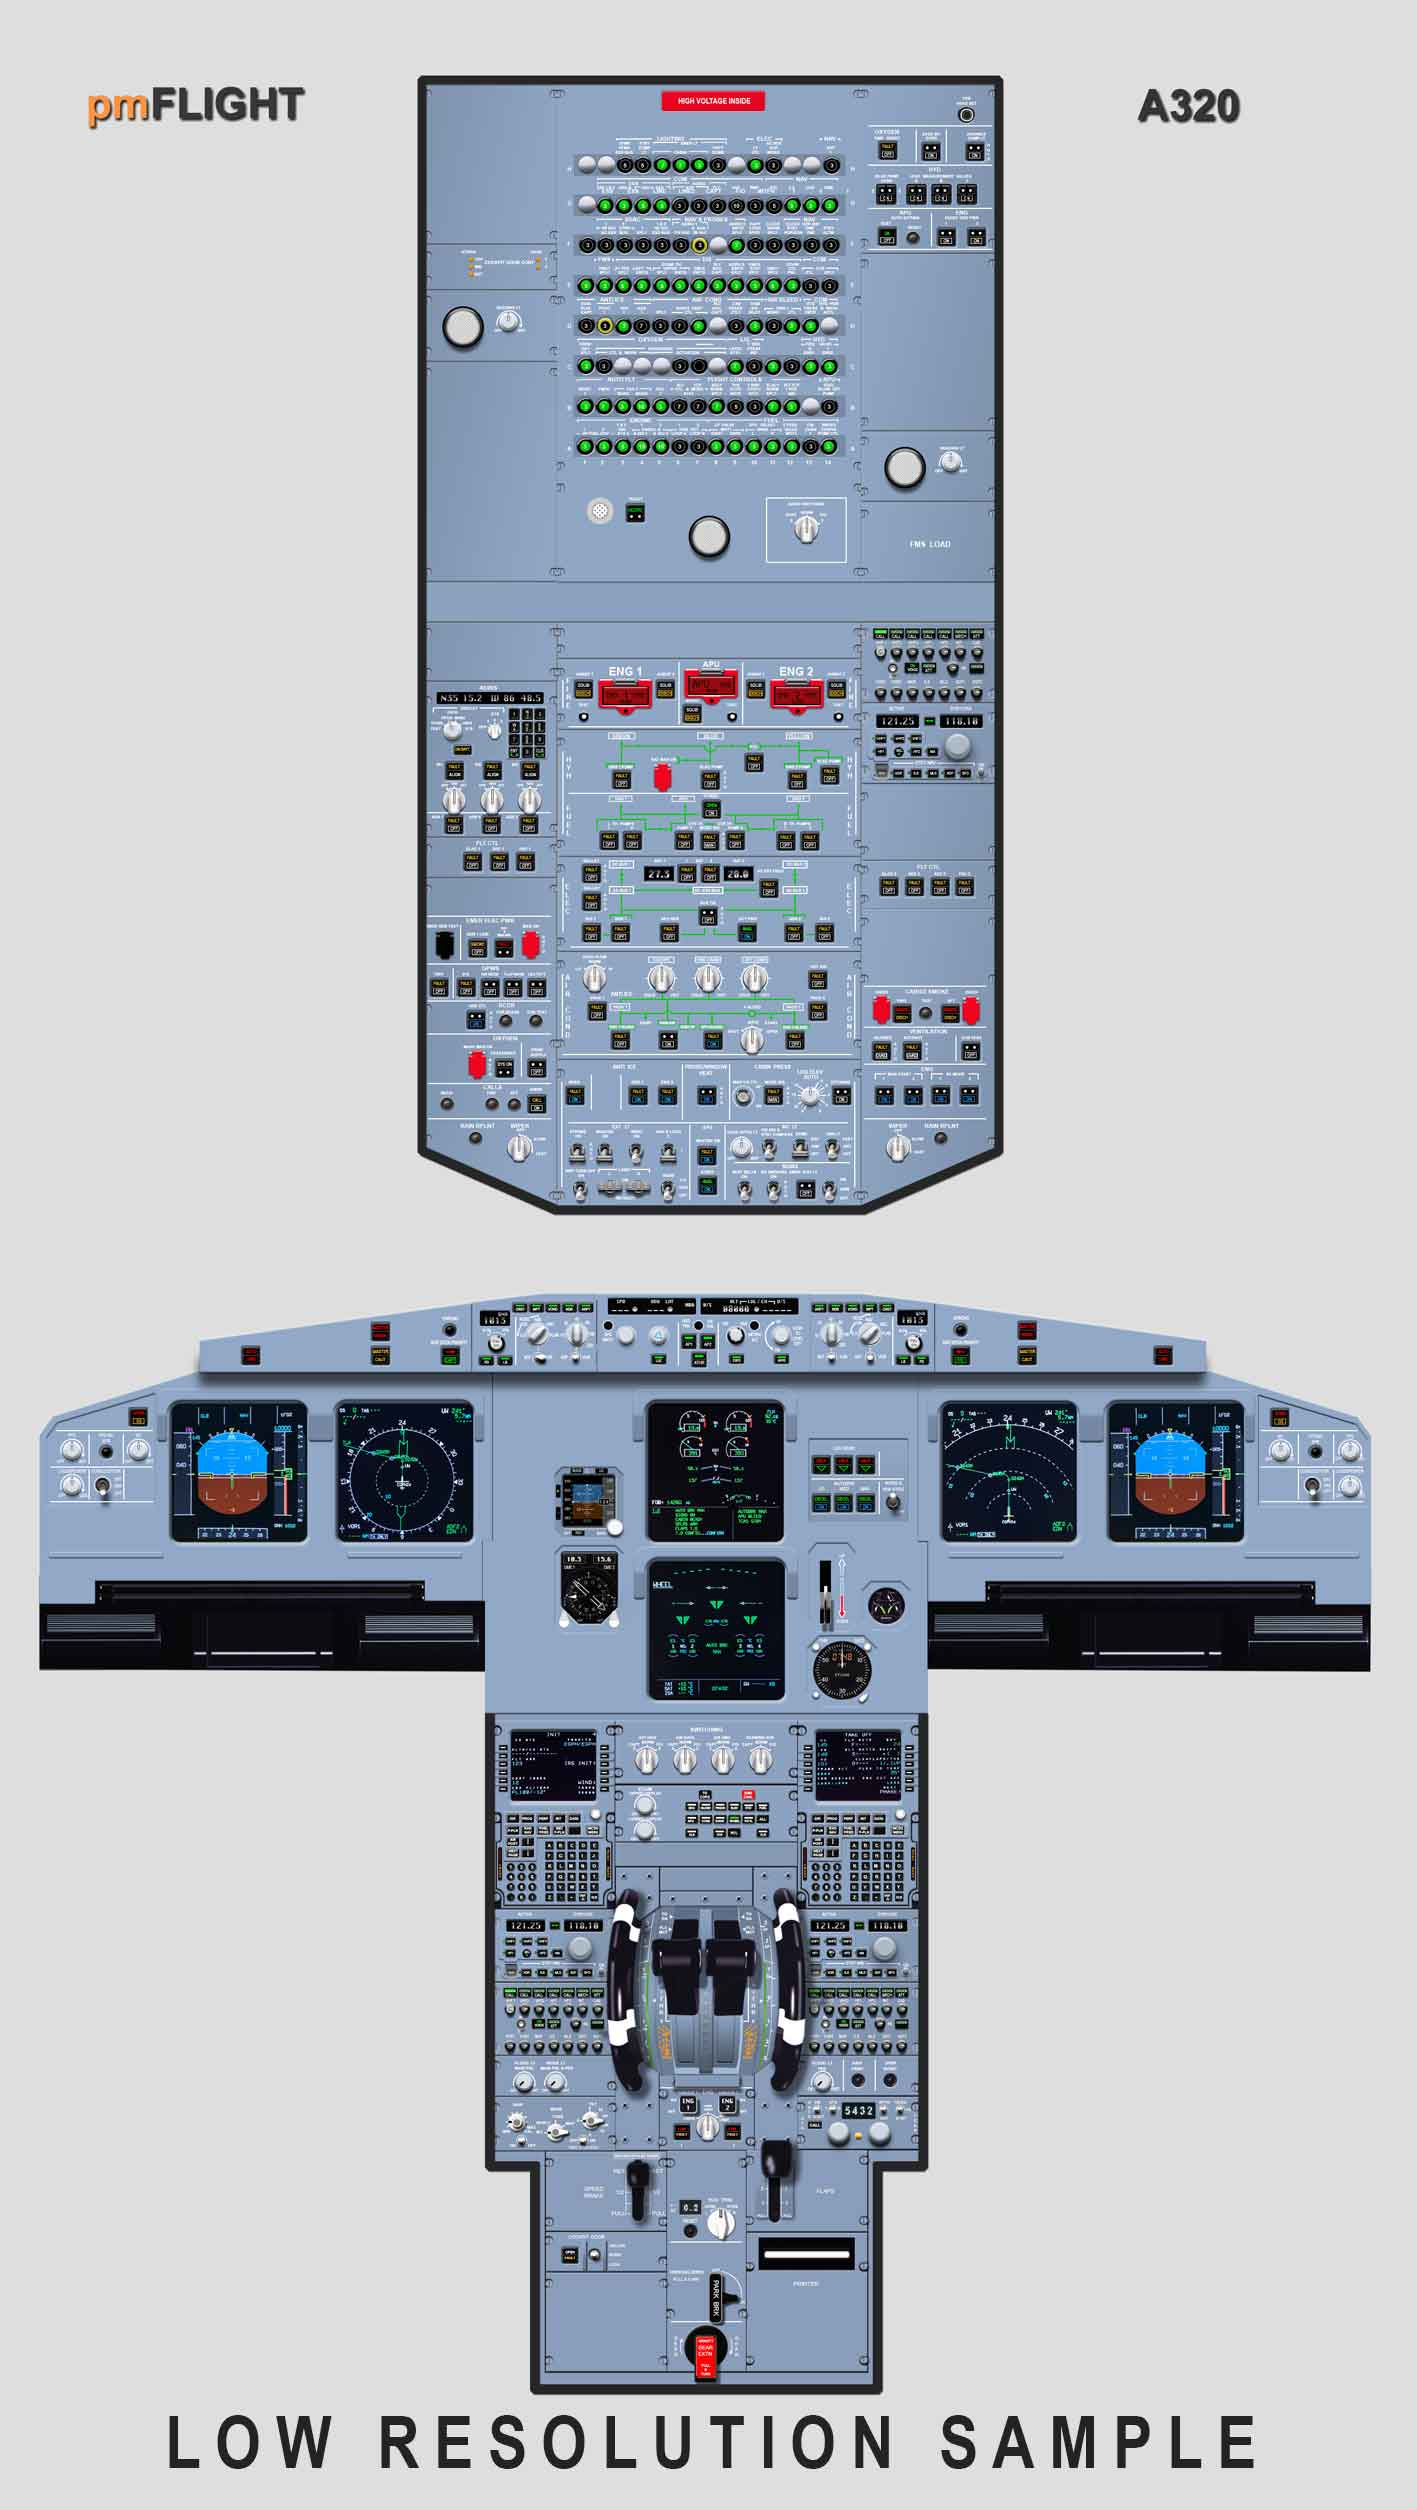 Free Airbus Cockpit Posters - PMFlight